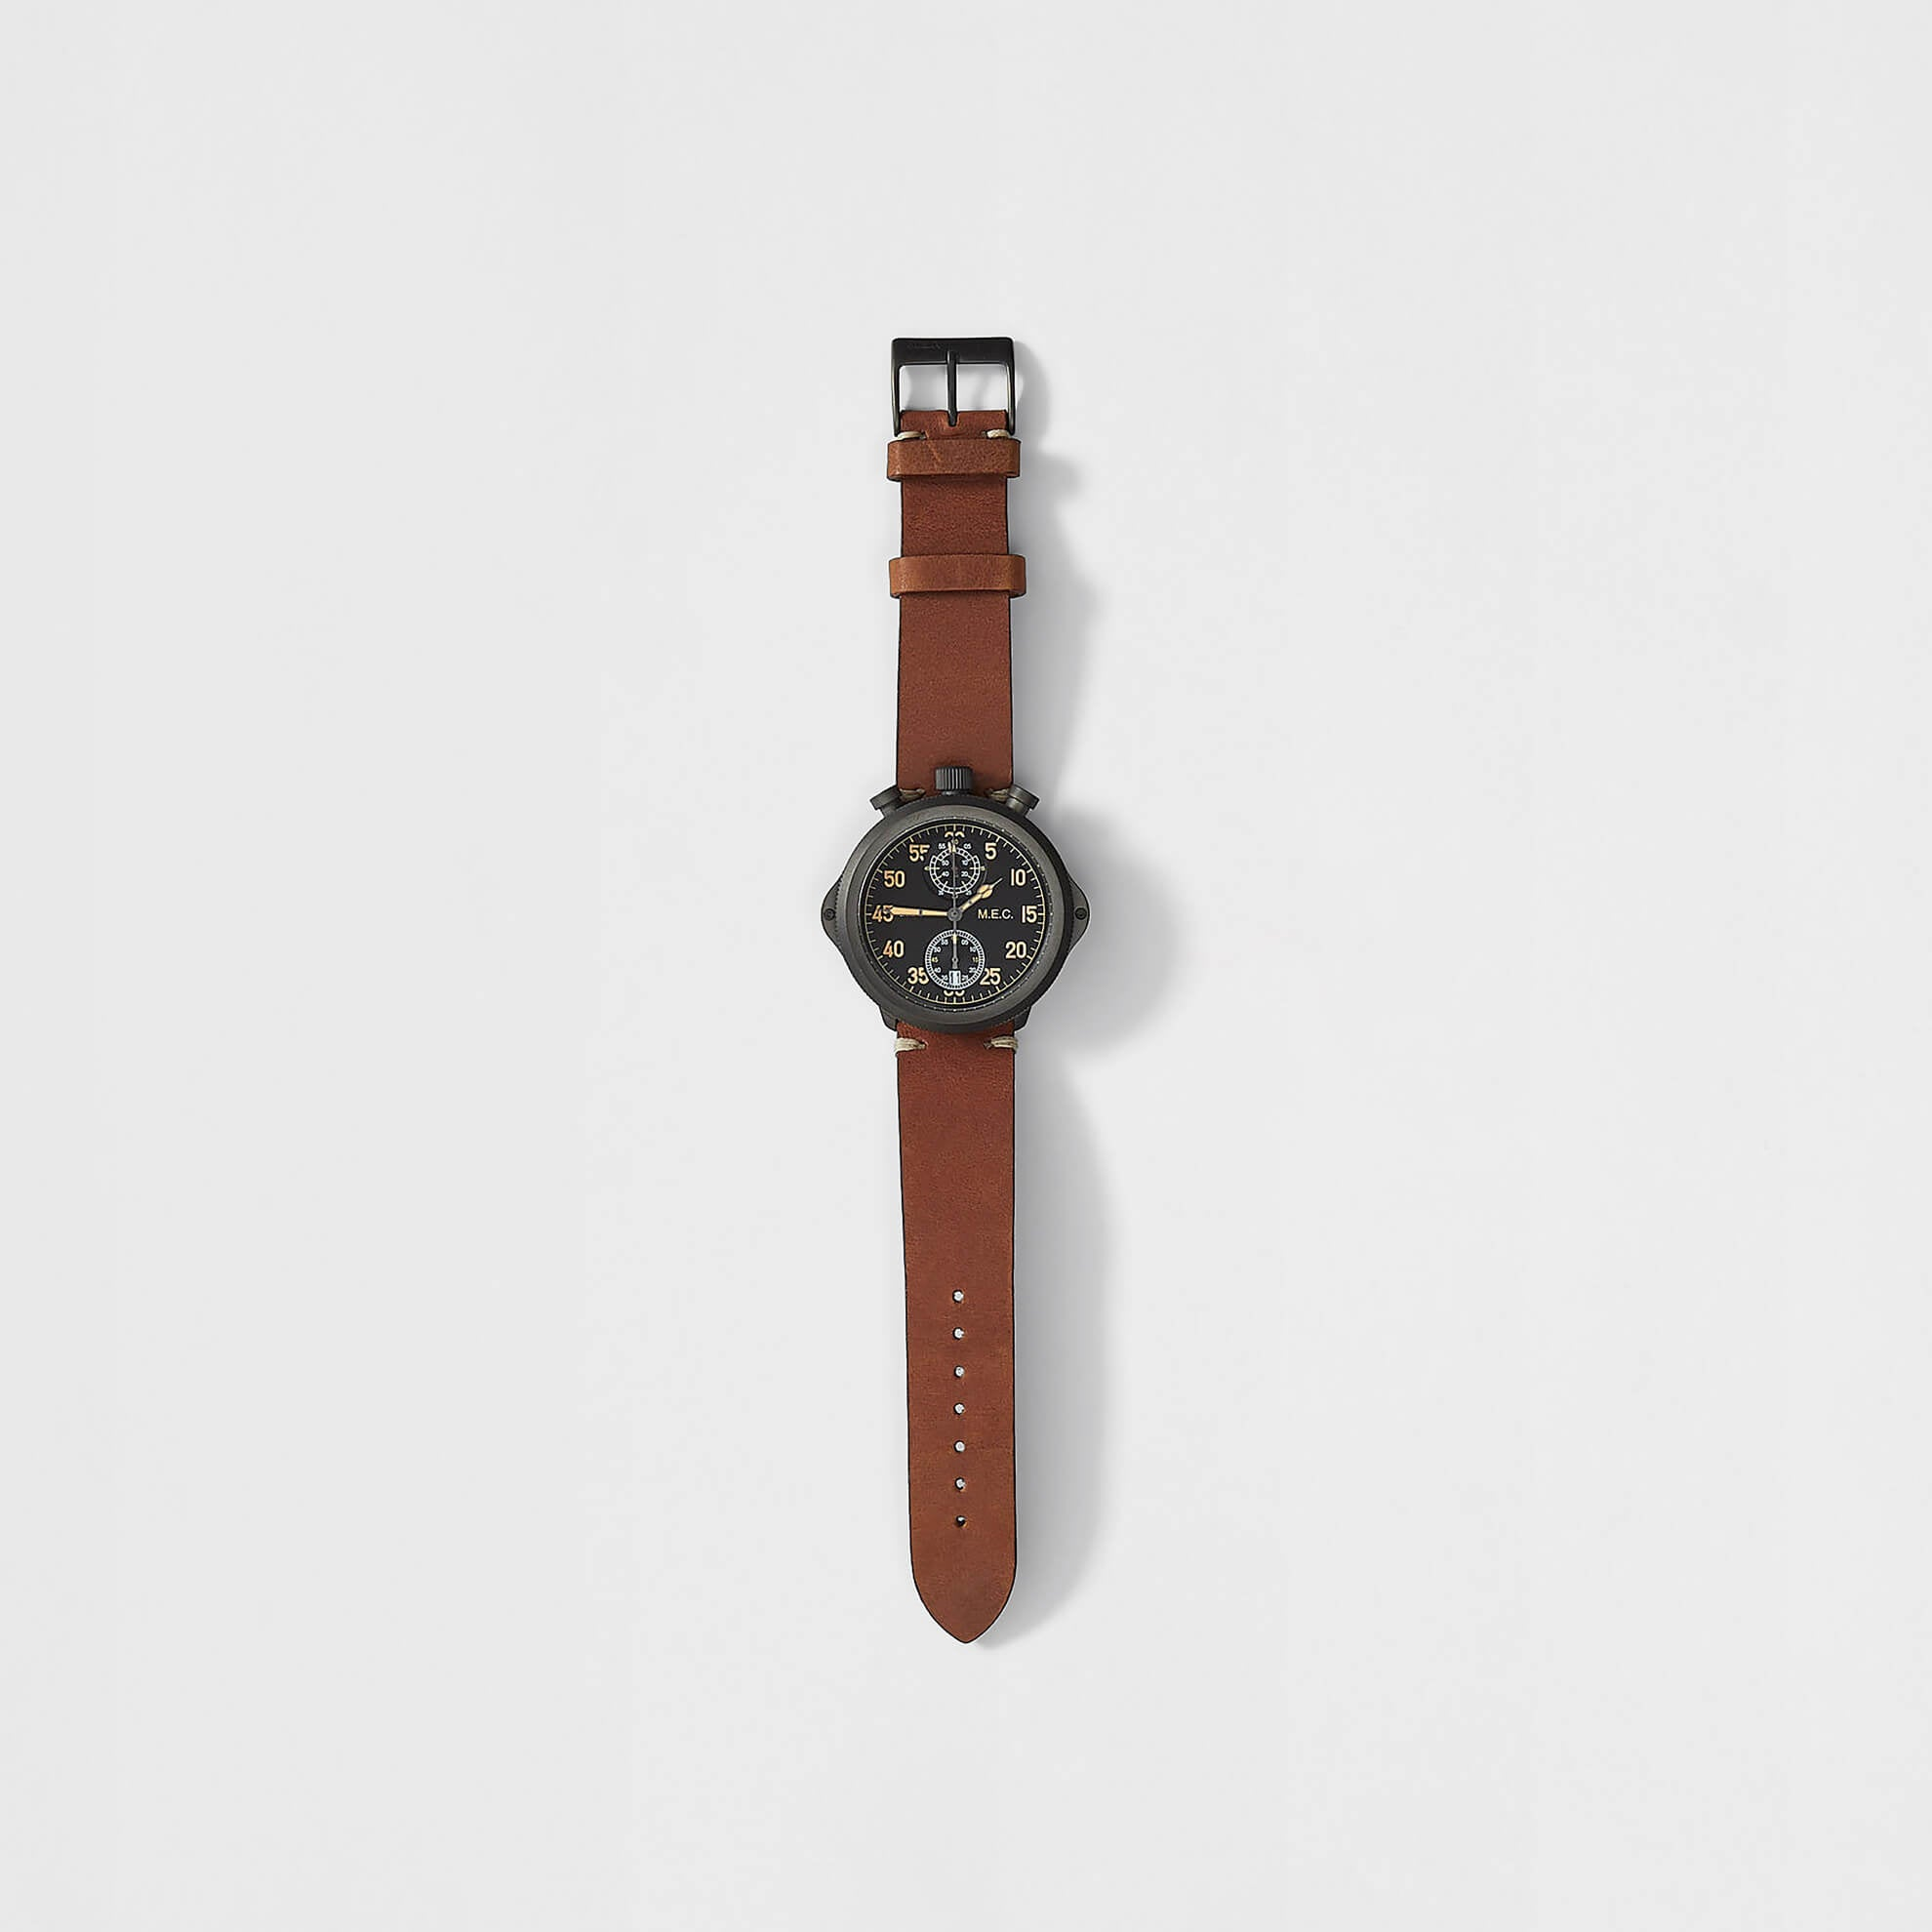 Aereo 60 Degree Chronograph Watch